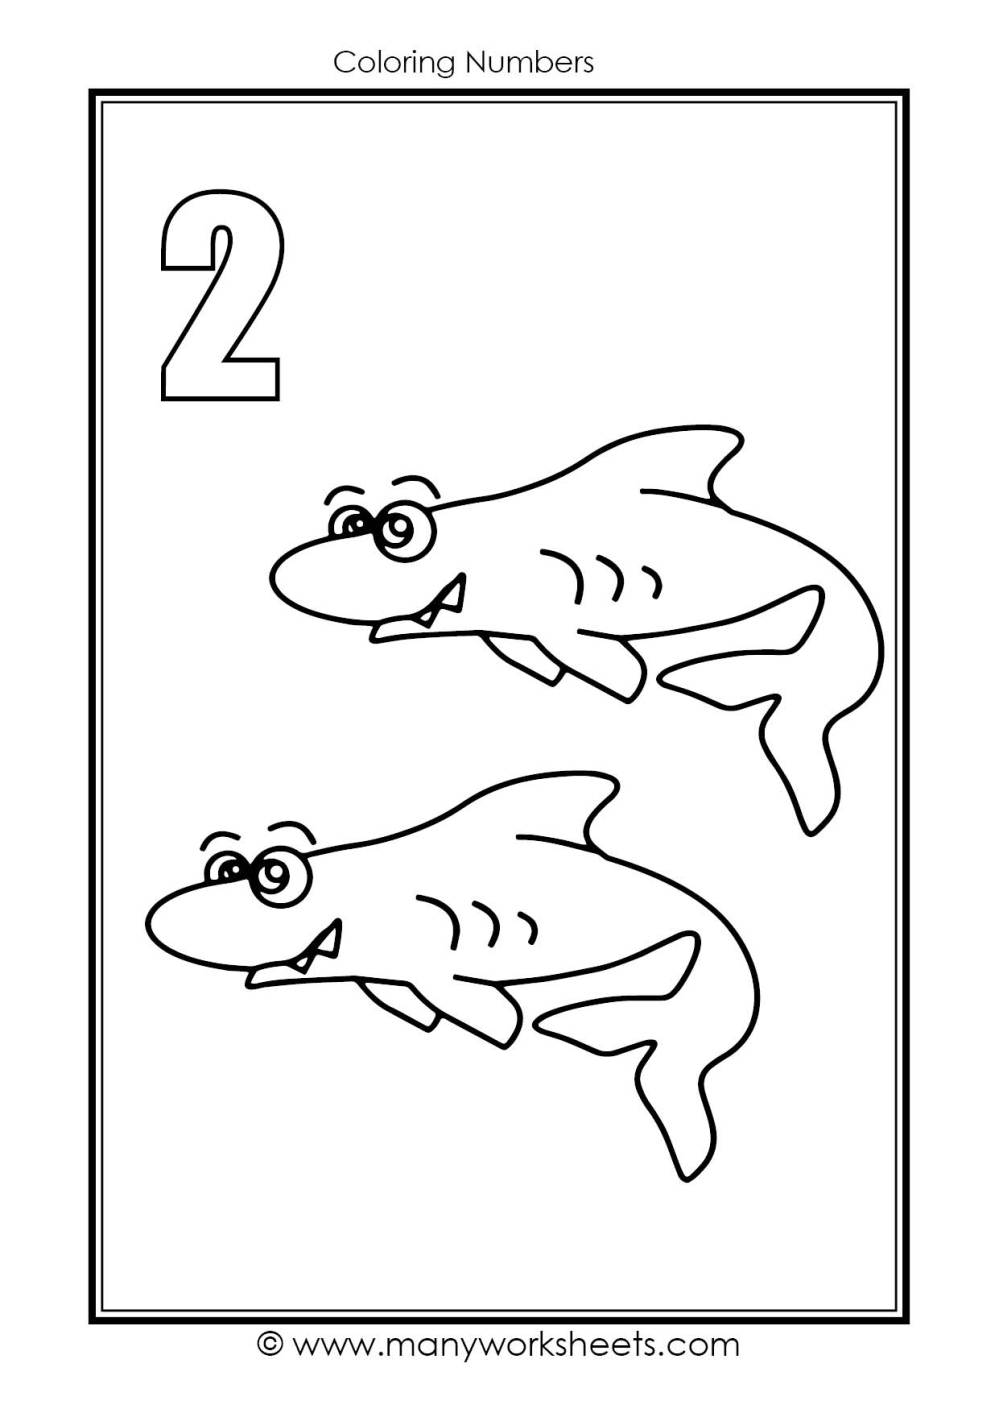 medium resolution of Learning Worksheets Wild Animal Coloring Pages 4th Grade Math Fractions  Worksheets Tracing Numbers 1-10 Grade3